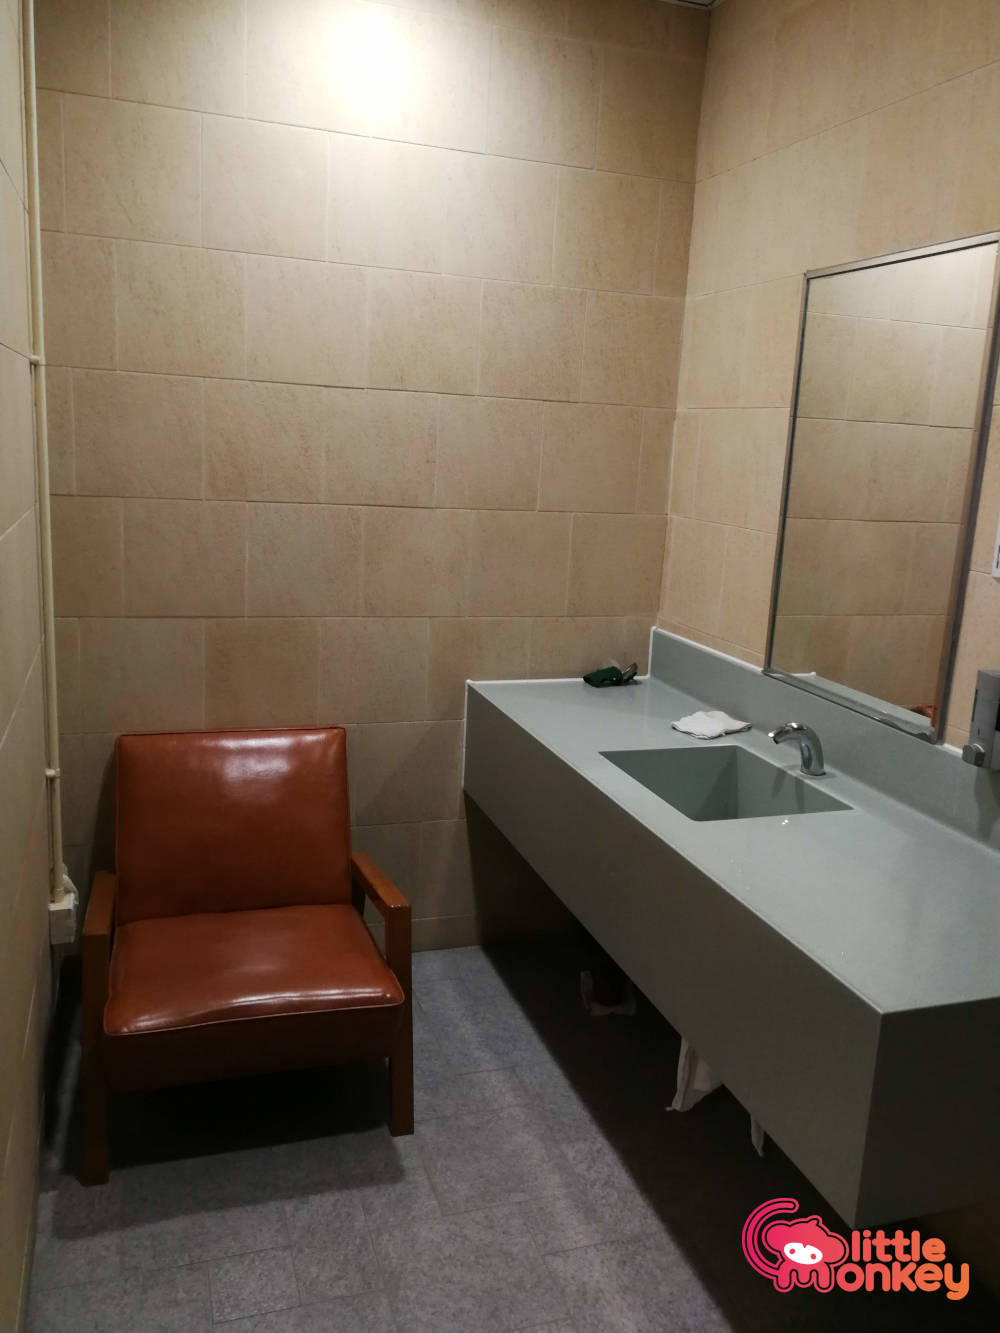 Baby care room's chair and basin in Hong Kong Squash Centre